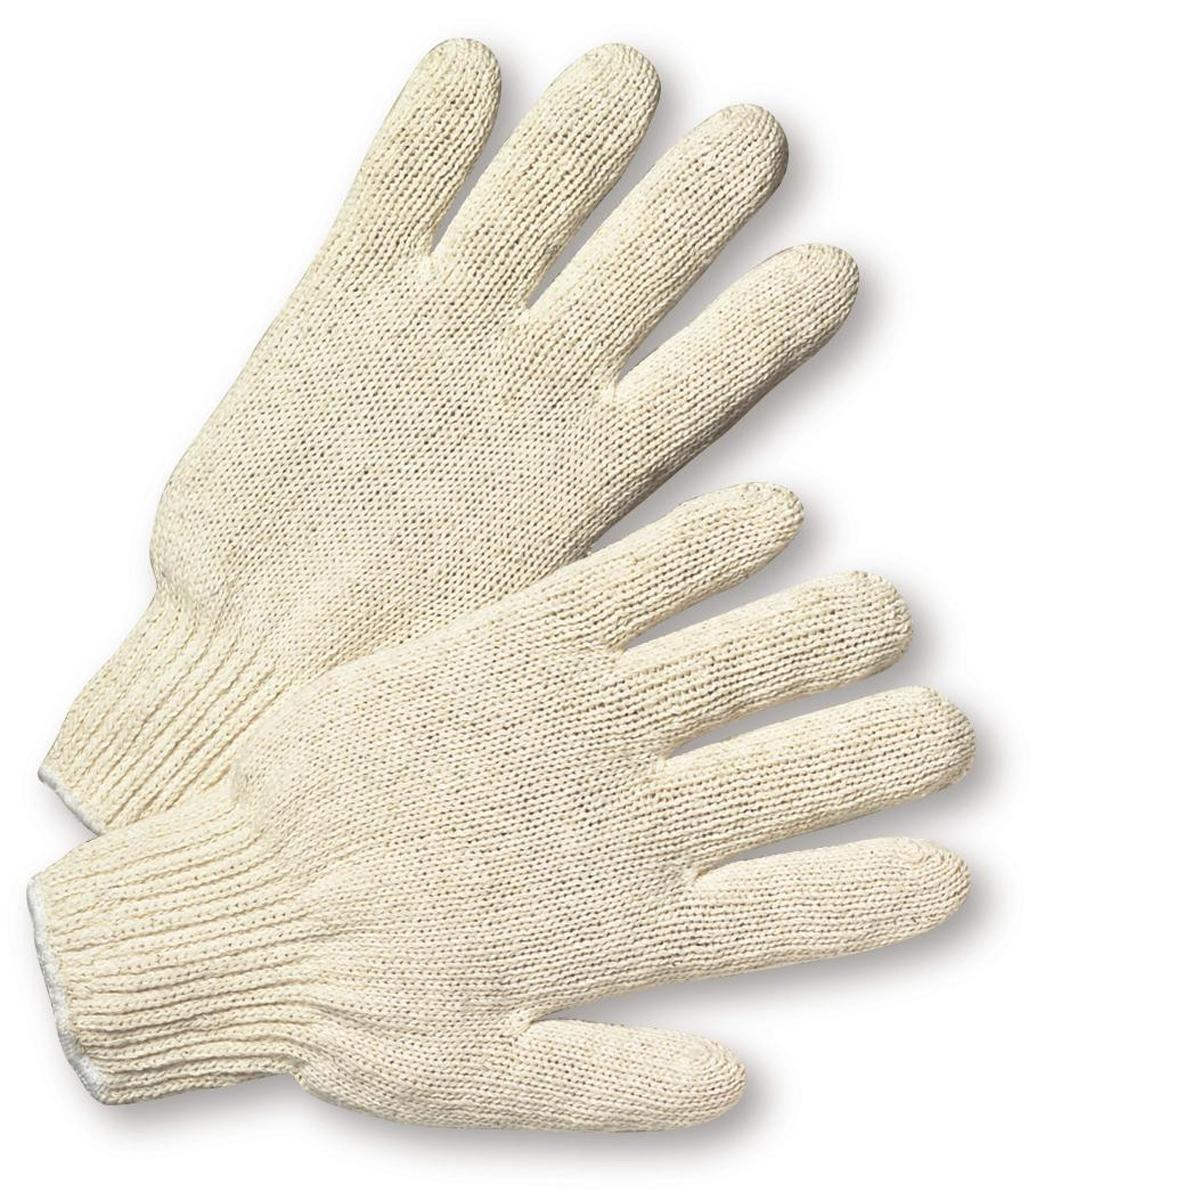 Glove Natural white string knit, 7-cut cotton/polyester, standard